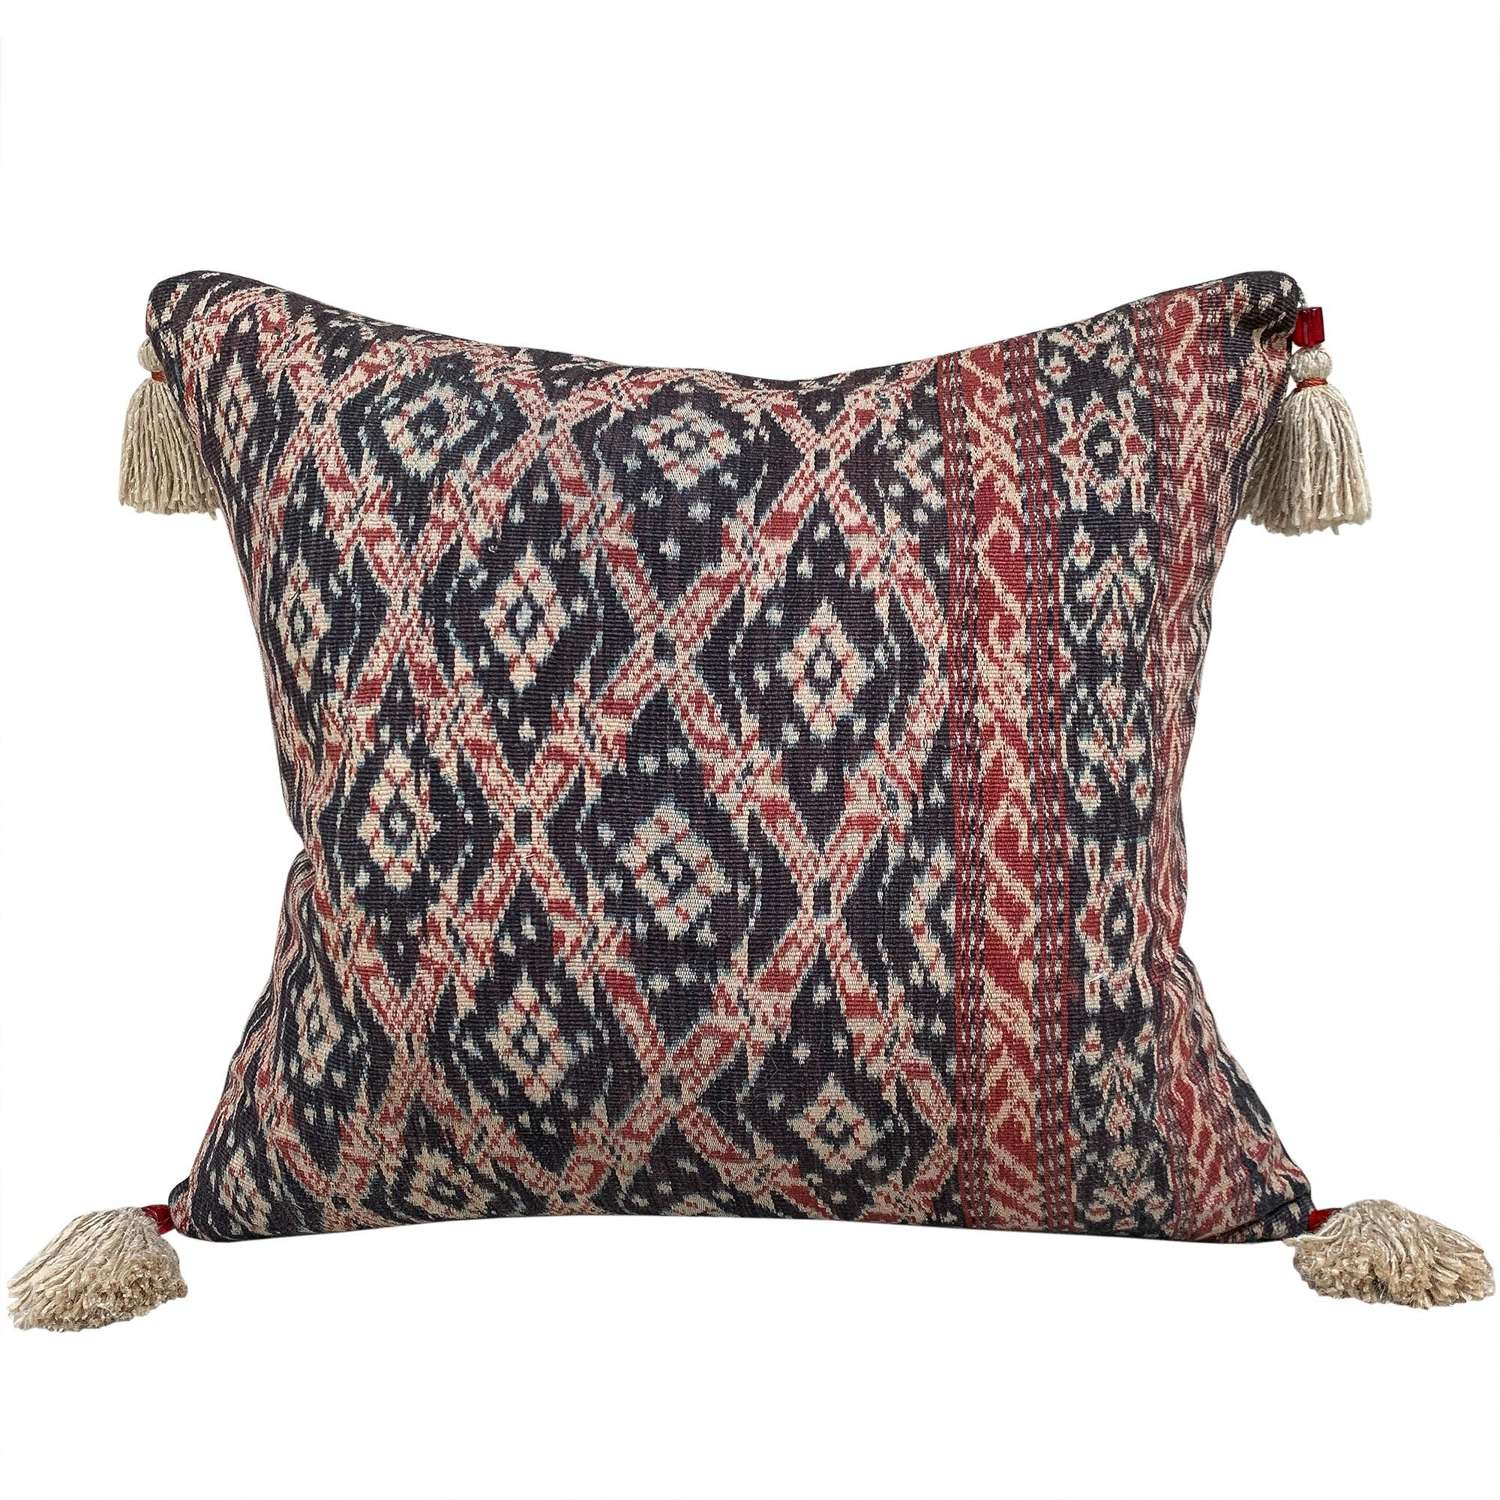 Ikat Cushion with beaded tassels